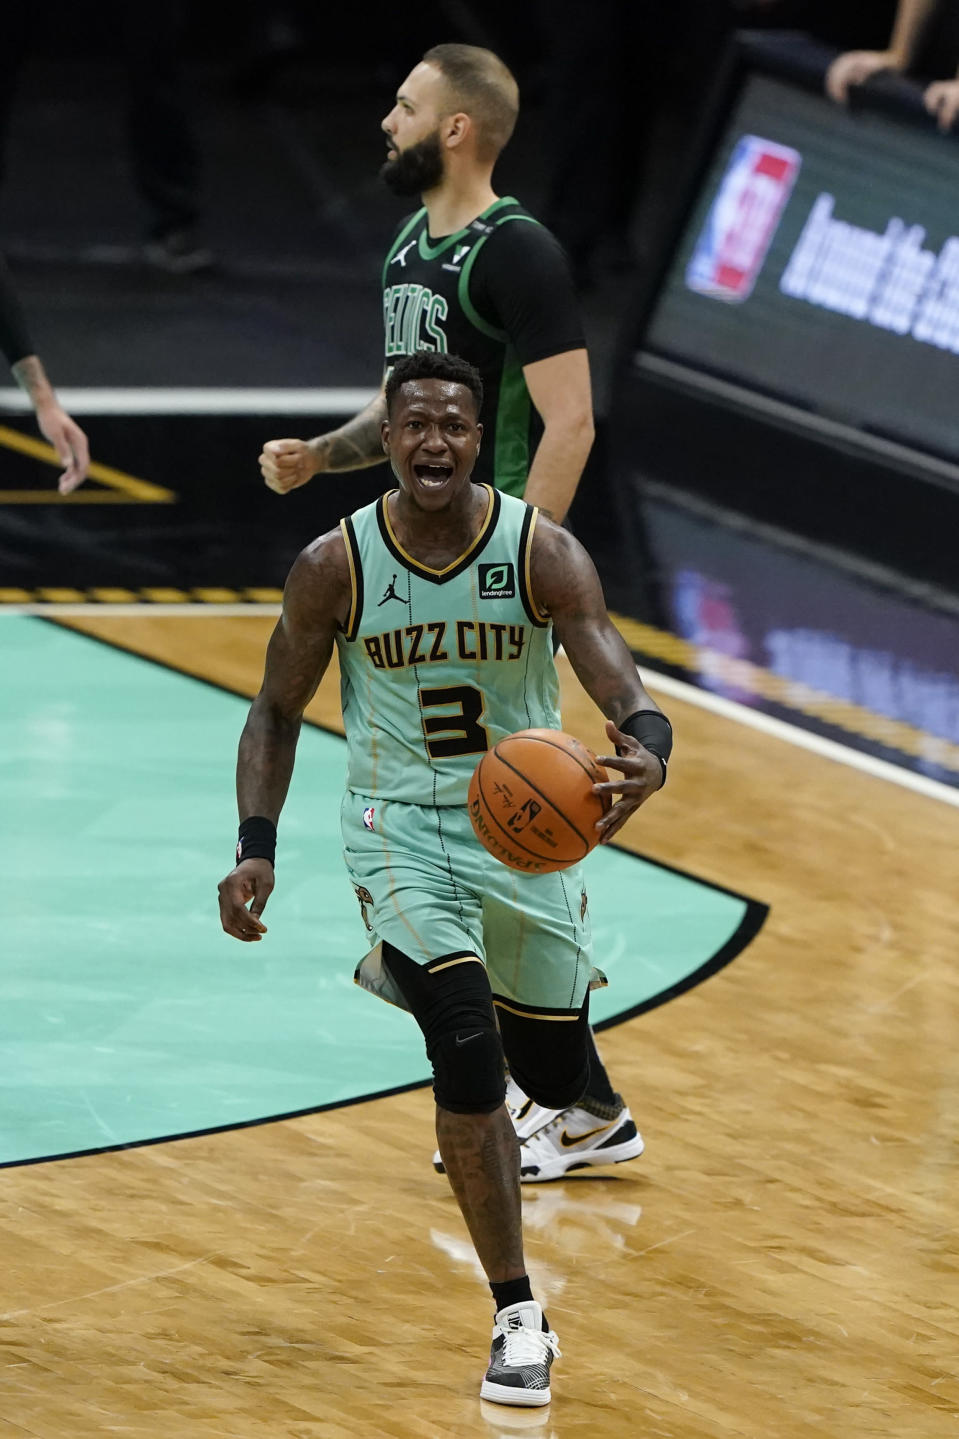 Charlotte Hornets guard Terry Rozier reacts after getting a foul call against the Boston Celtics during the first half of an NBA basketball game on Sunday, April 25, 2021, in Charlotte, N.C. (AP Photo/Chris Carlson)